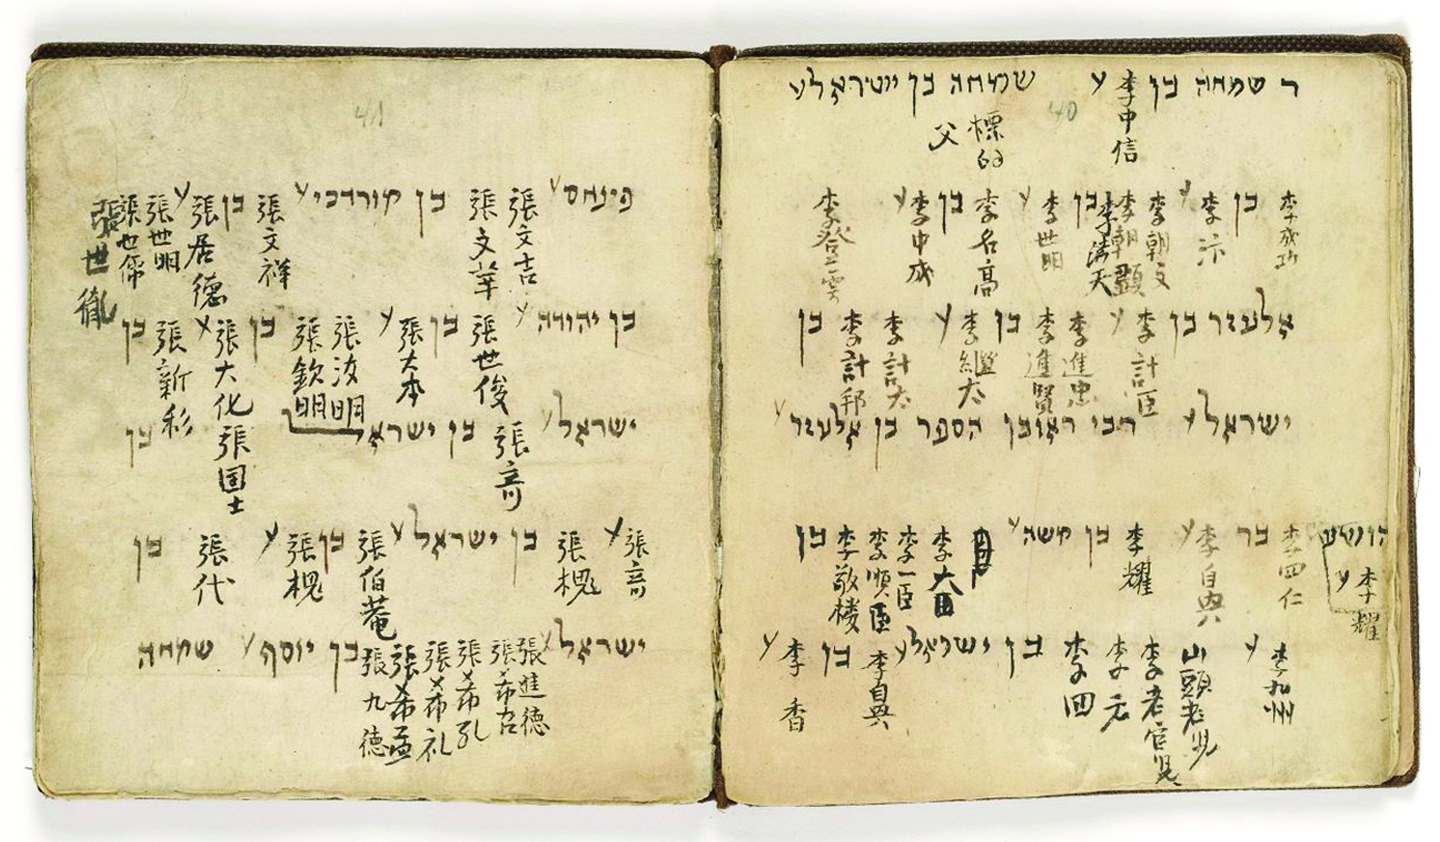 The Haggadah of the Kaifeng Jews of China